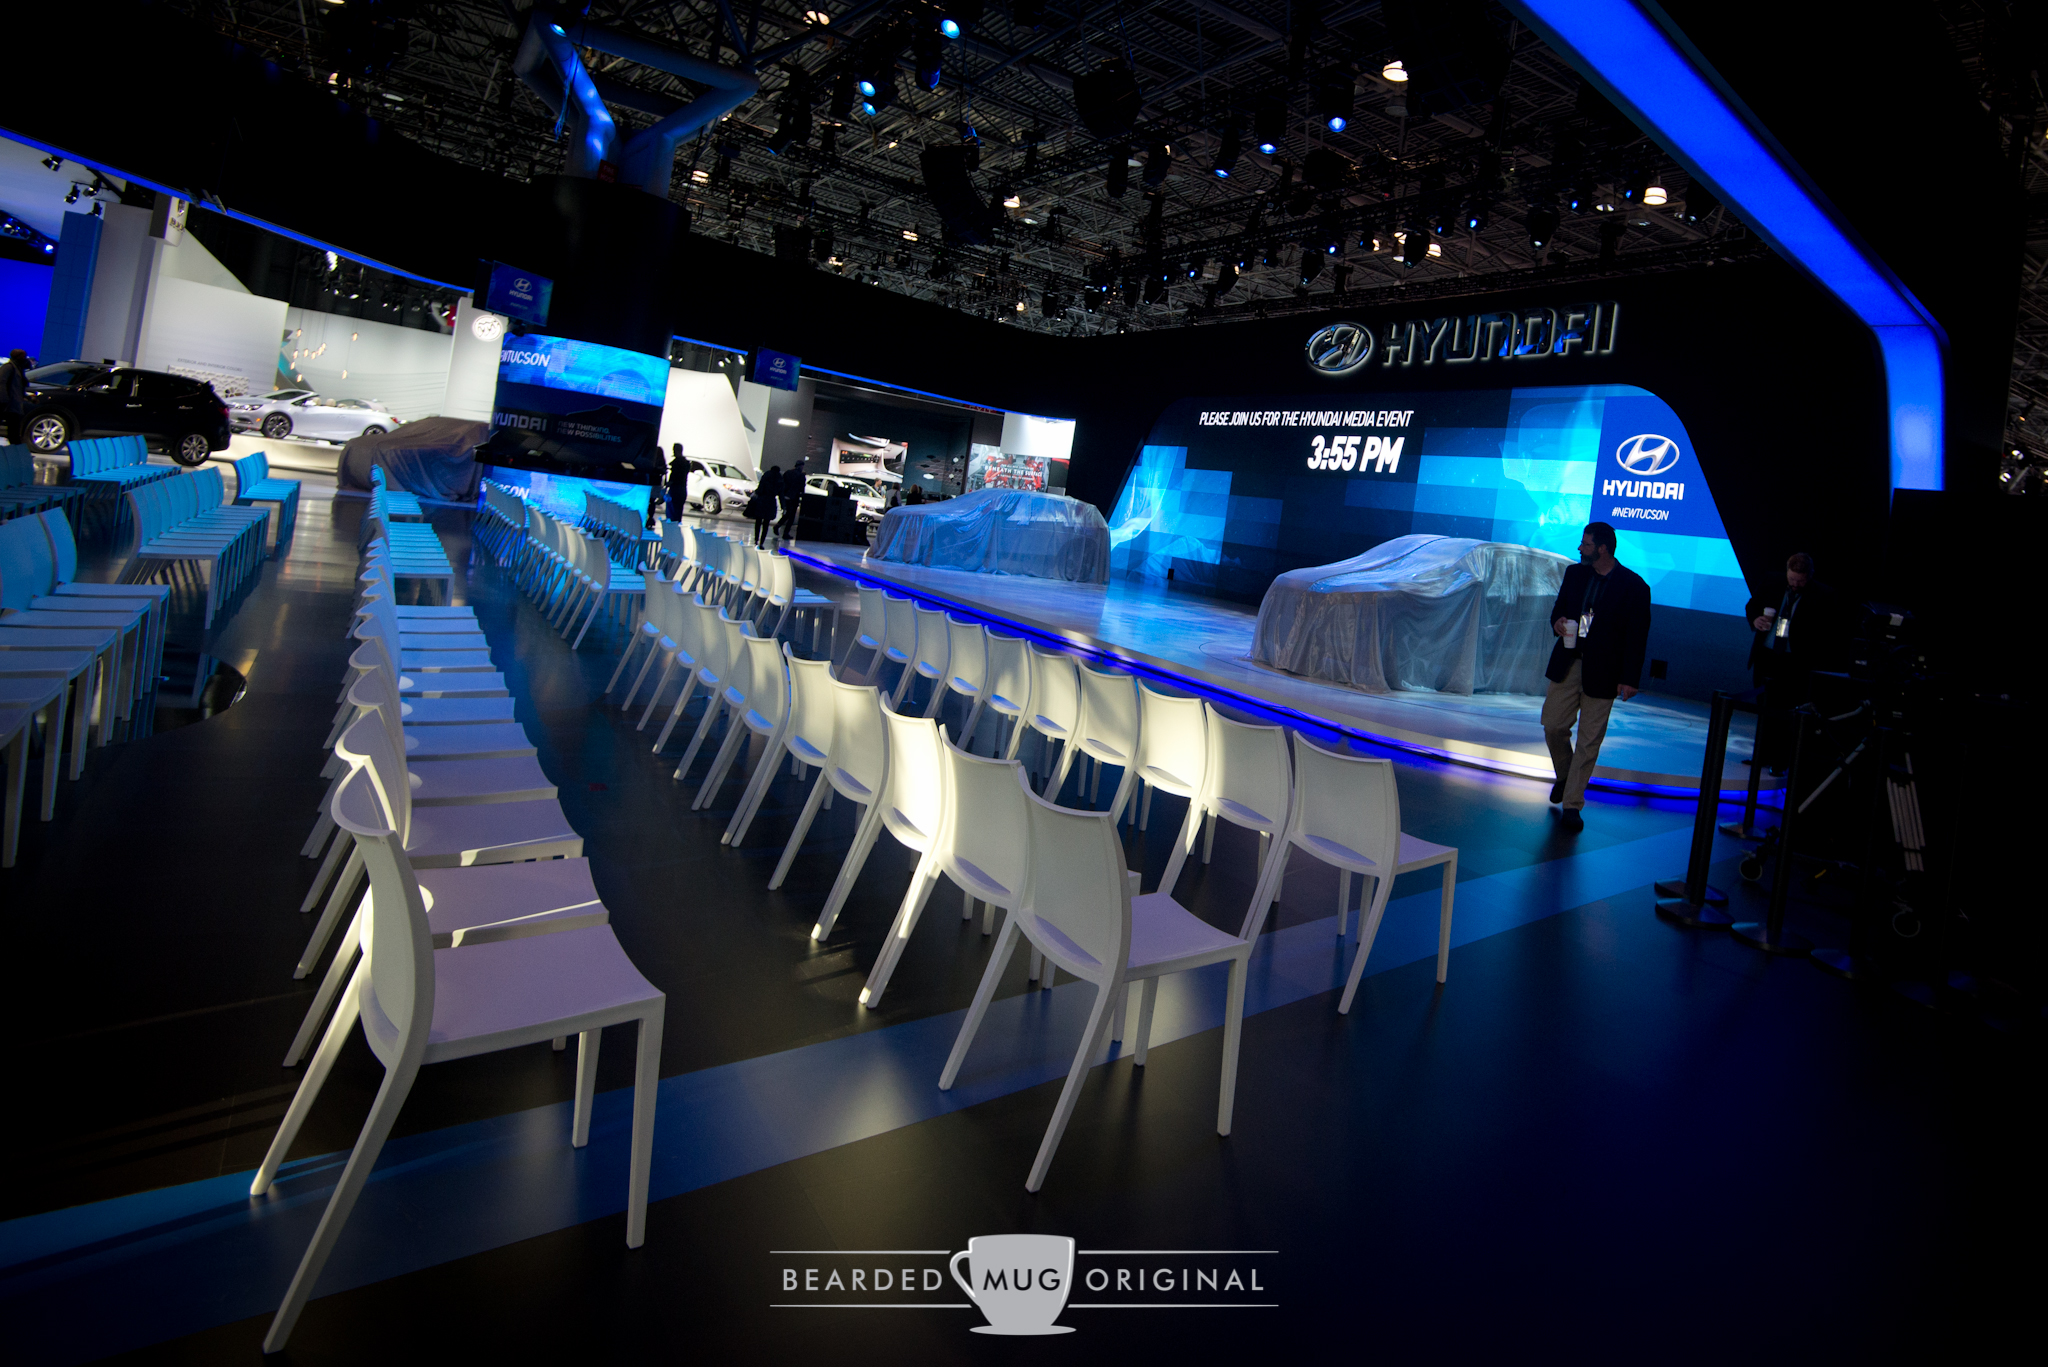 Hyundai's area remained vacant until the indicated time, with new SUVs covered by cloths on the stage.